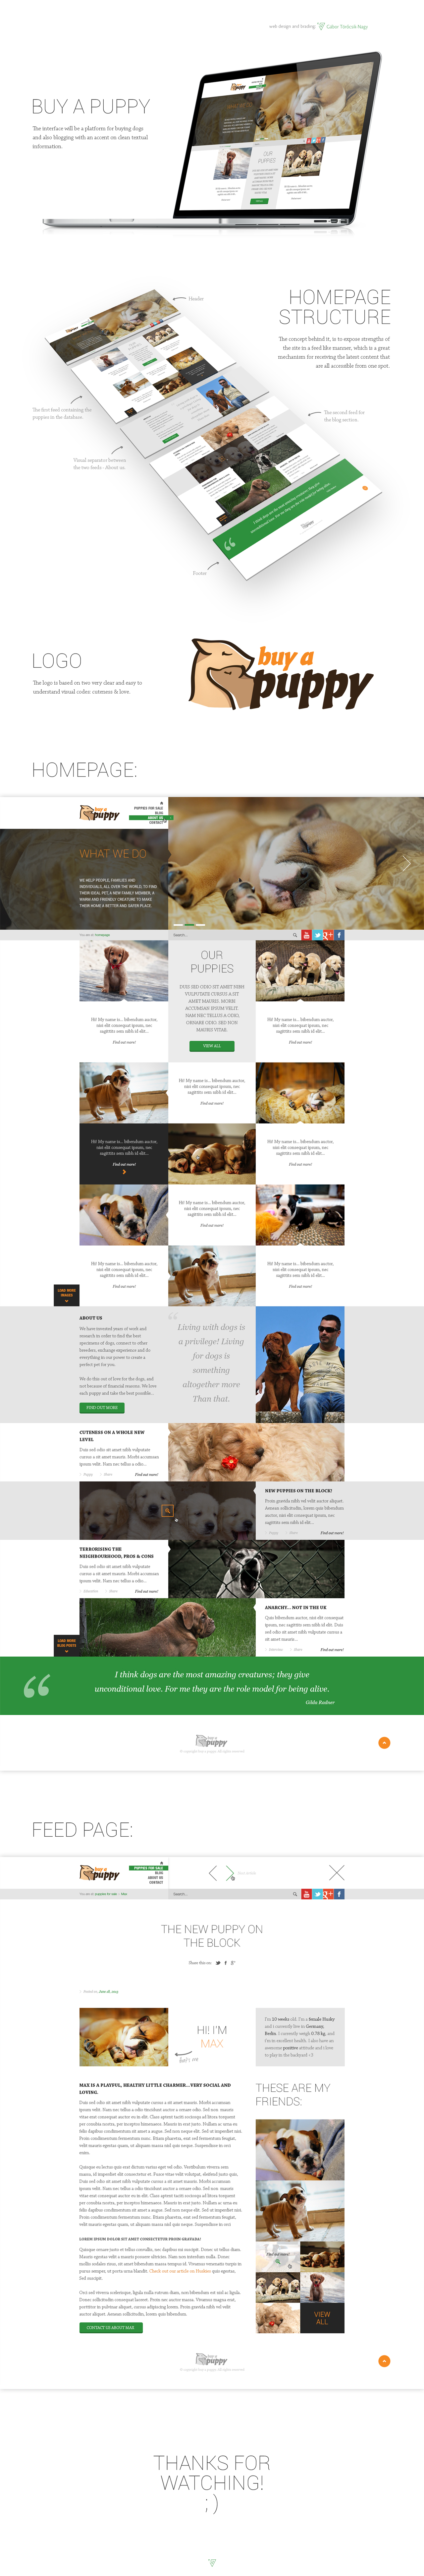 Web design - Buy a Puppy by Tngabor